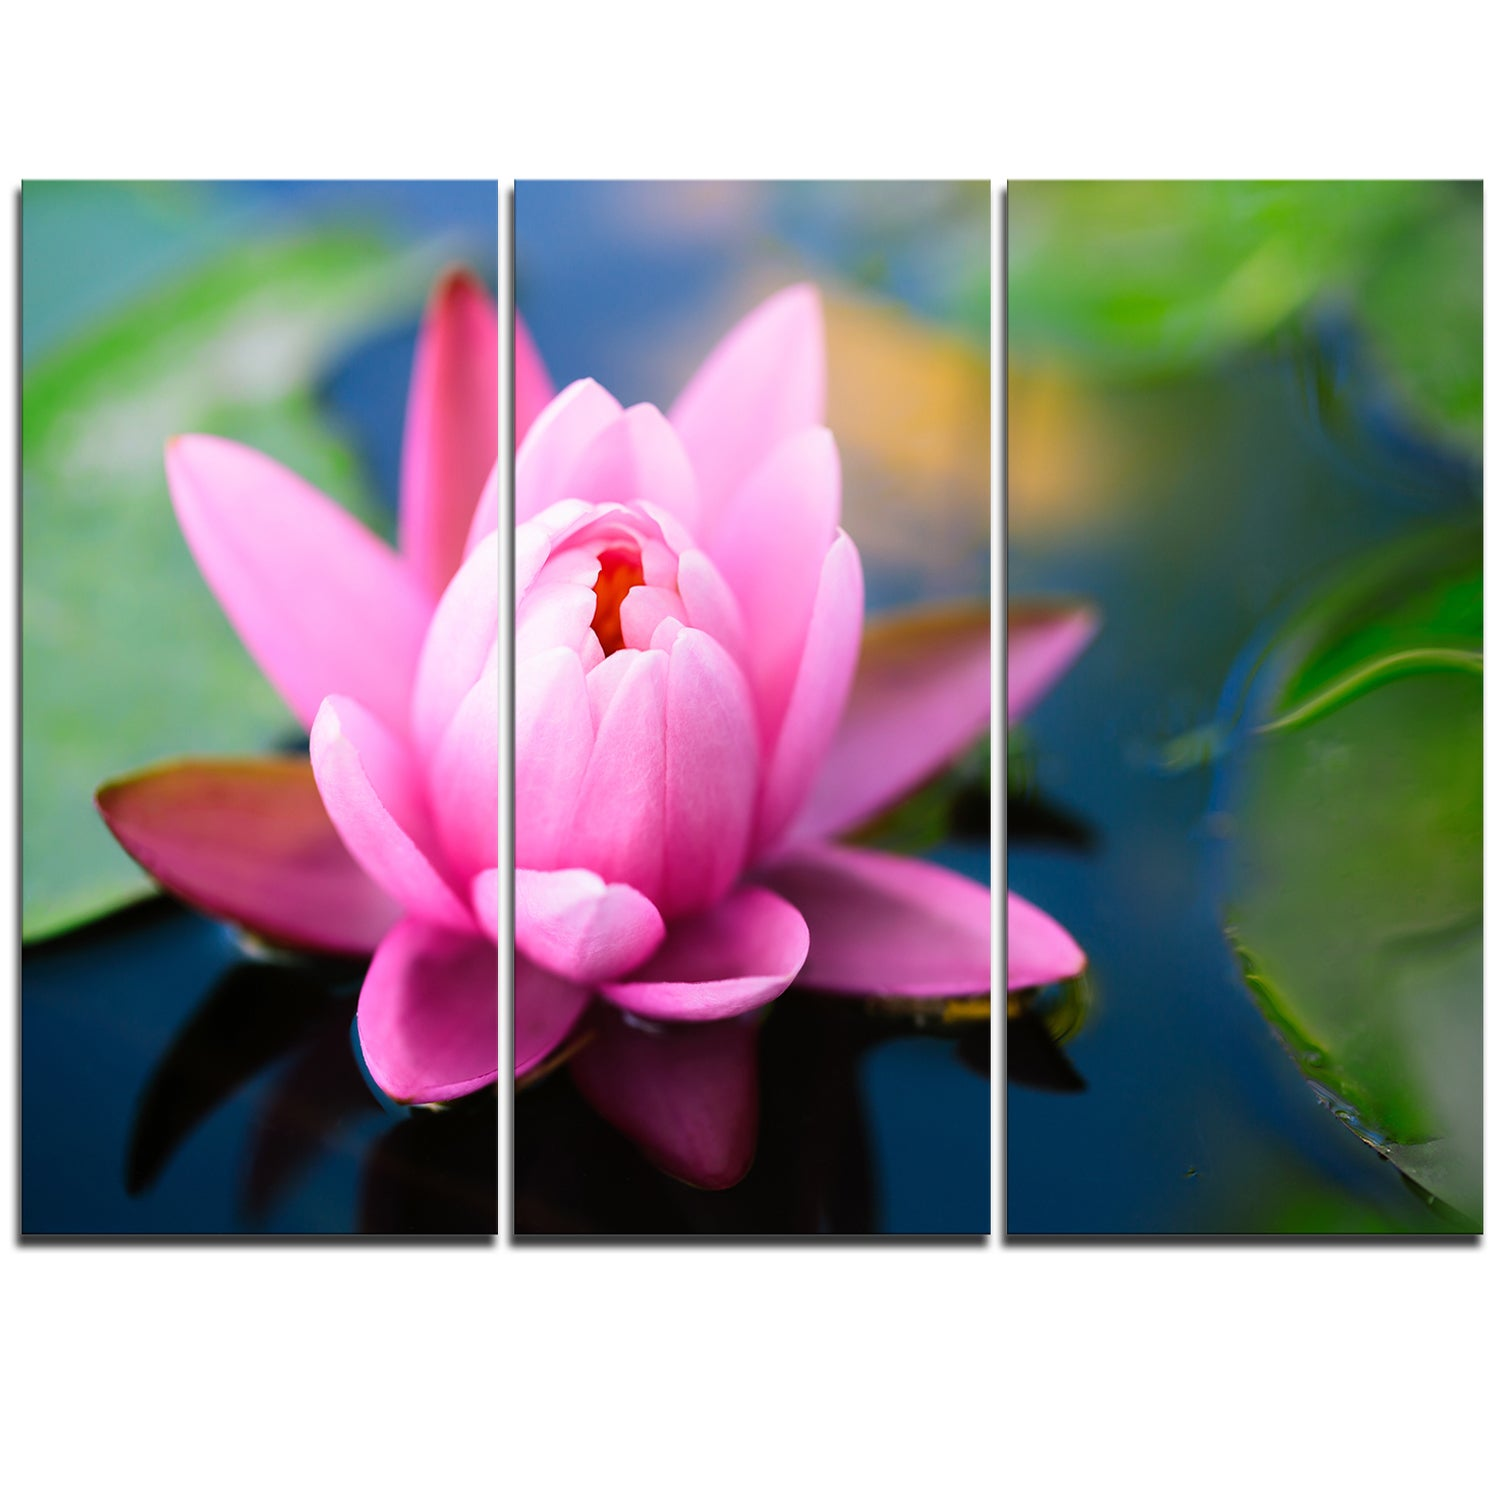 Shop large lotus flower in the pond large floral canvas art print shop large lotus flower in the pond large floral canvas art print blue on sale free shipping today overstock 12236600 mightylinksfo